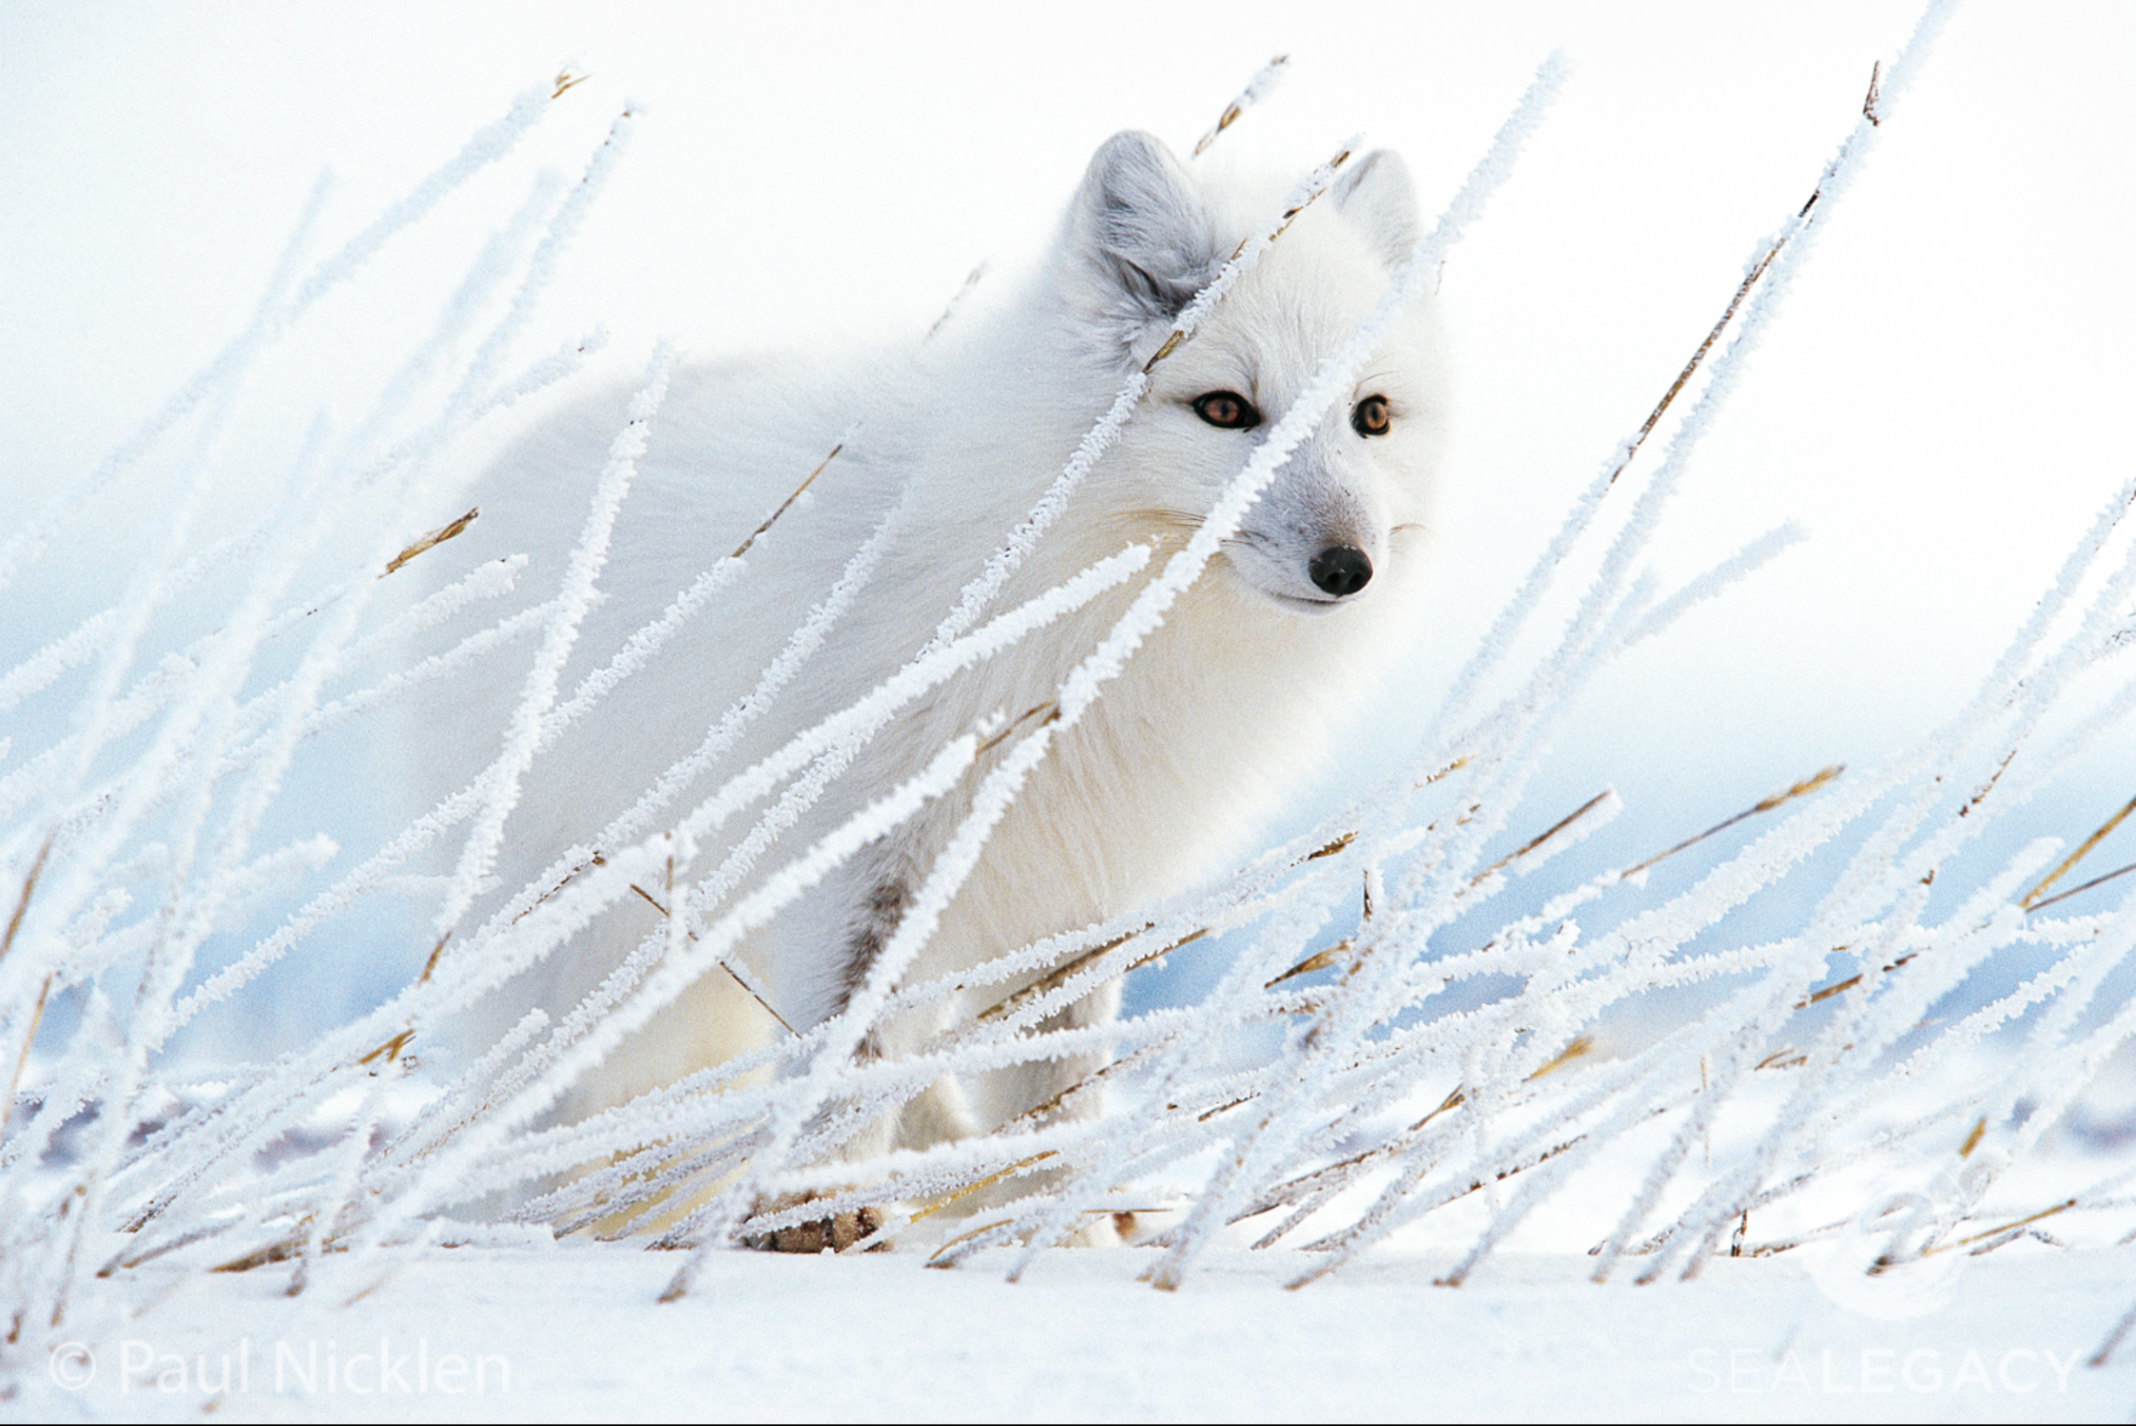 Paul Nicklen, Arctic Fox  Archival Pigment Print, 20x30 in.